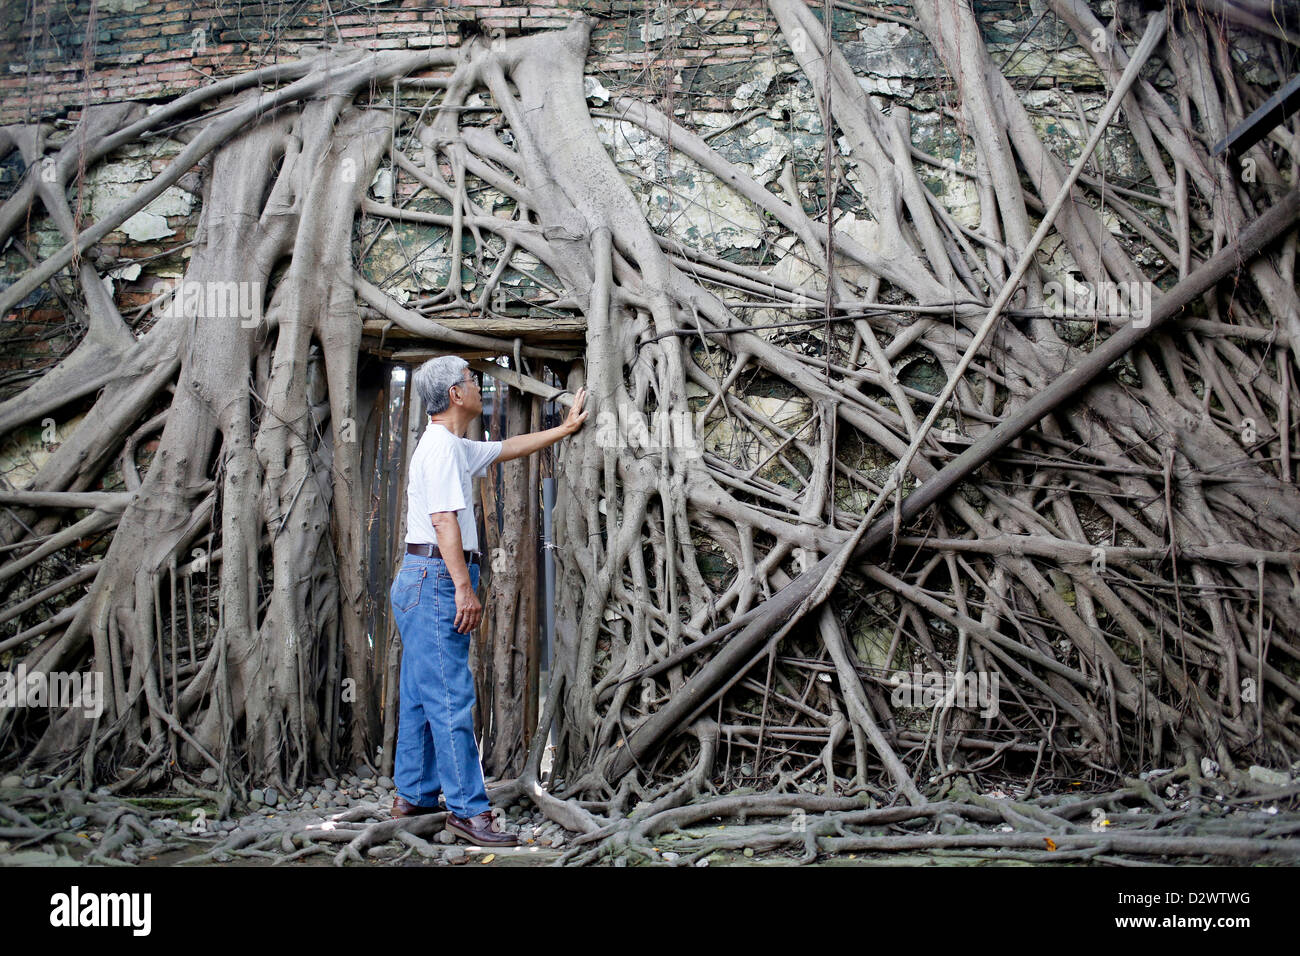 Banyan tree roots surround a Dutch colonial warehouse, known as the 'Banyan House,' in Anping, Taiwan - Stock Image